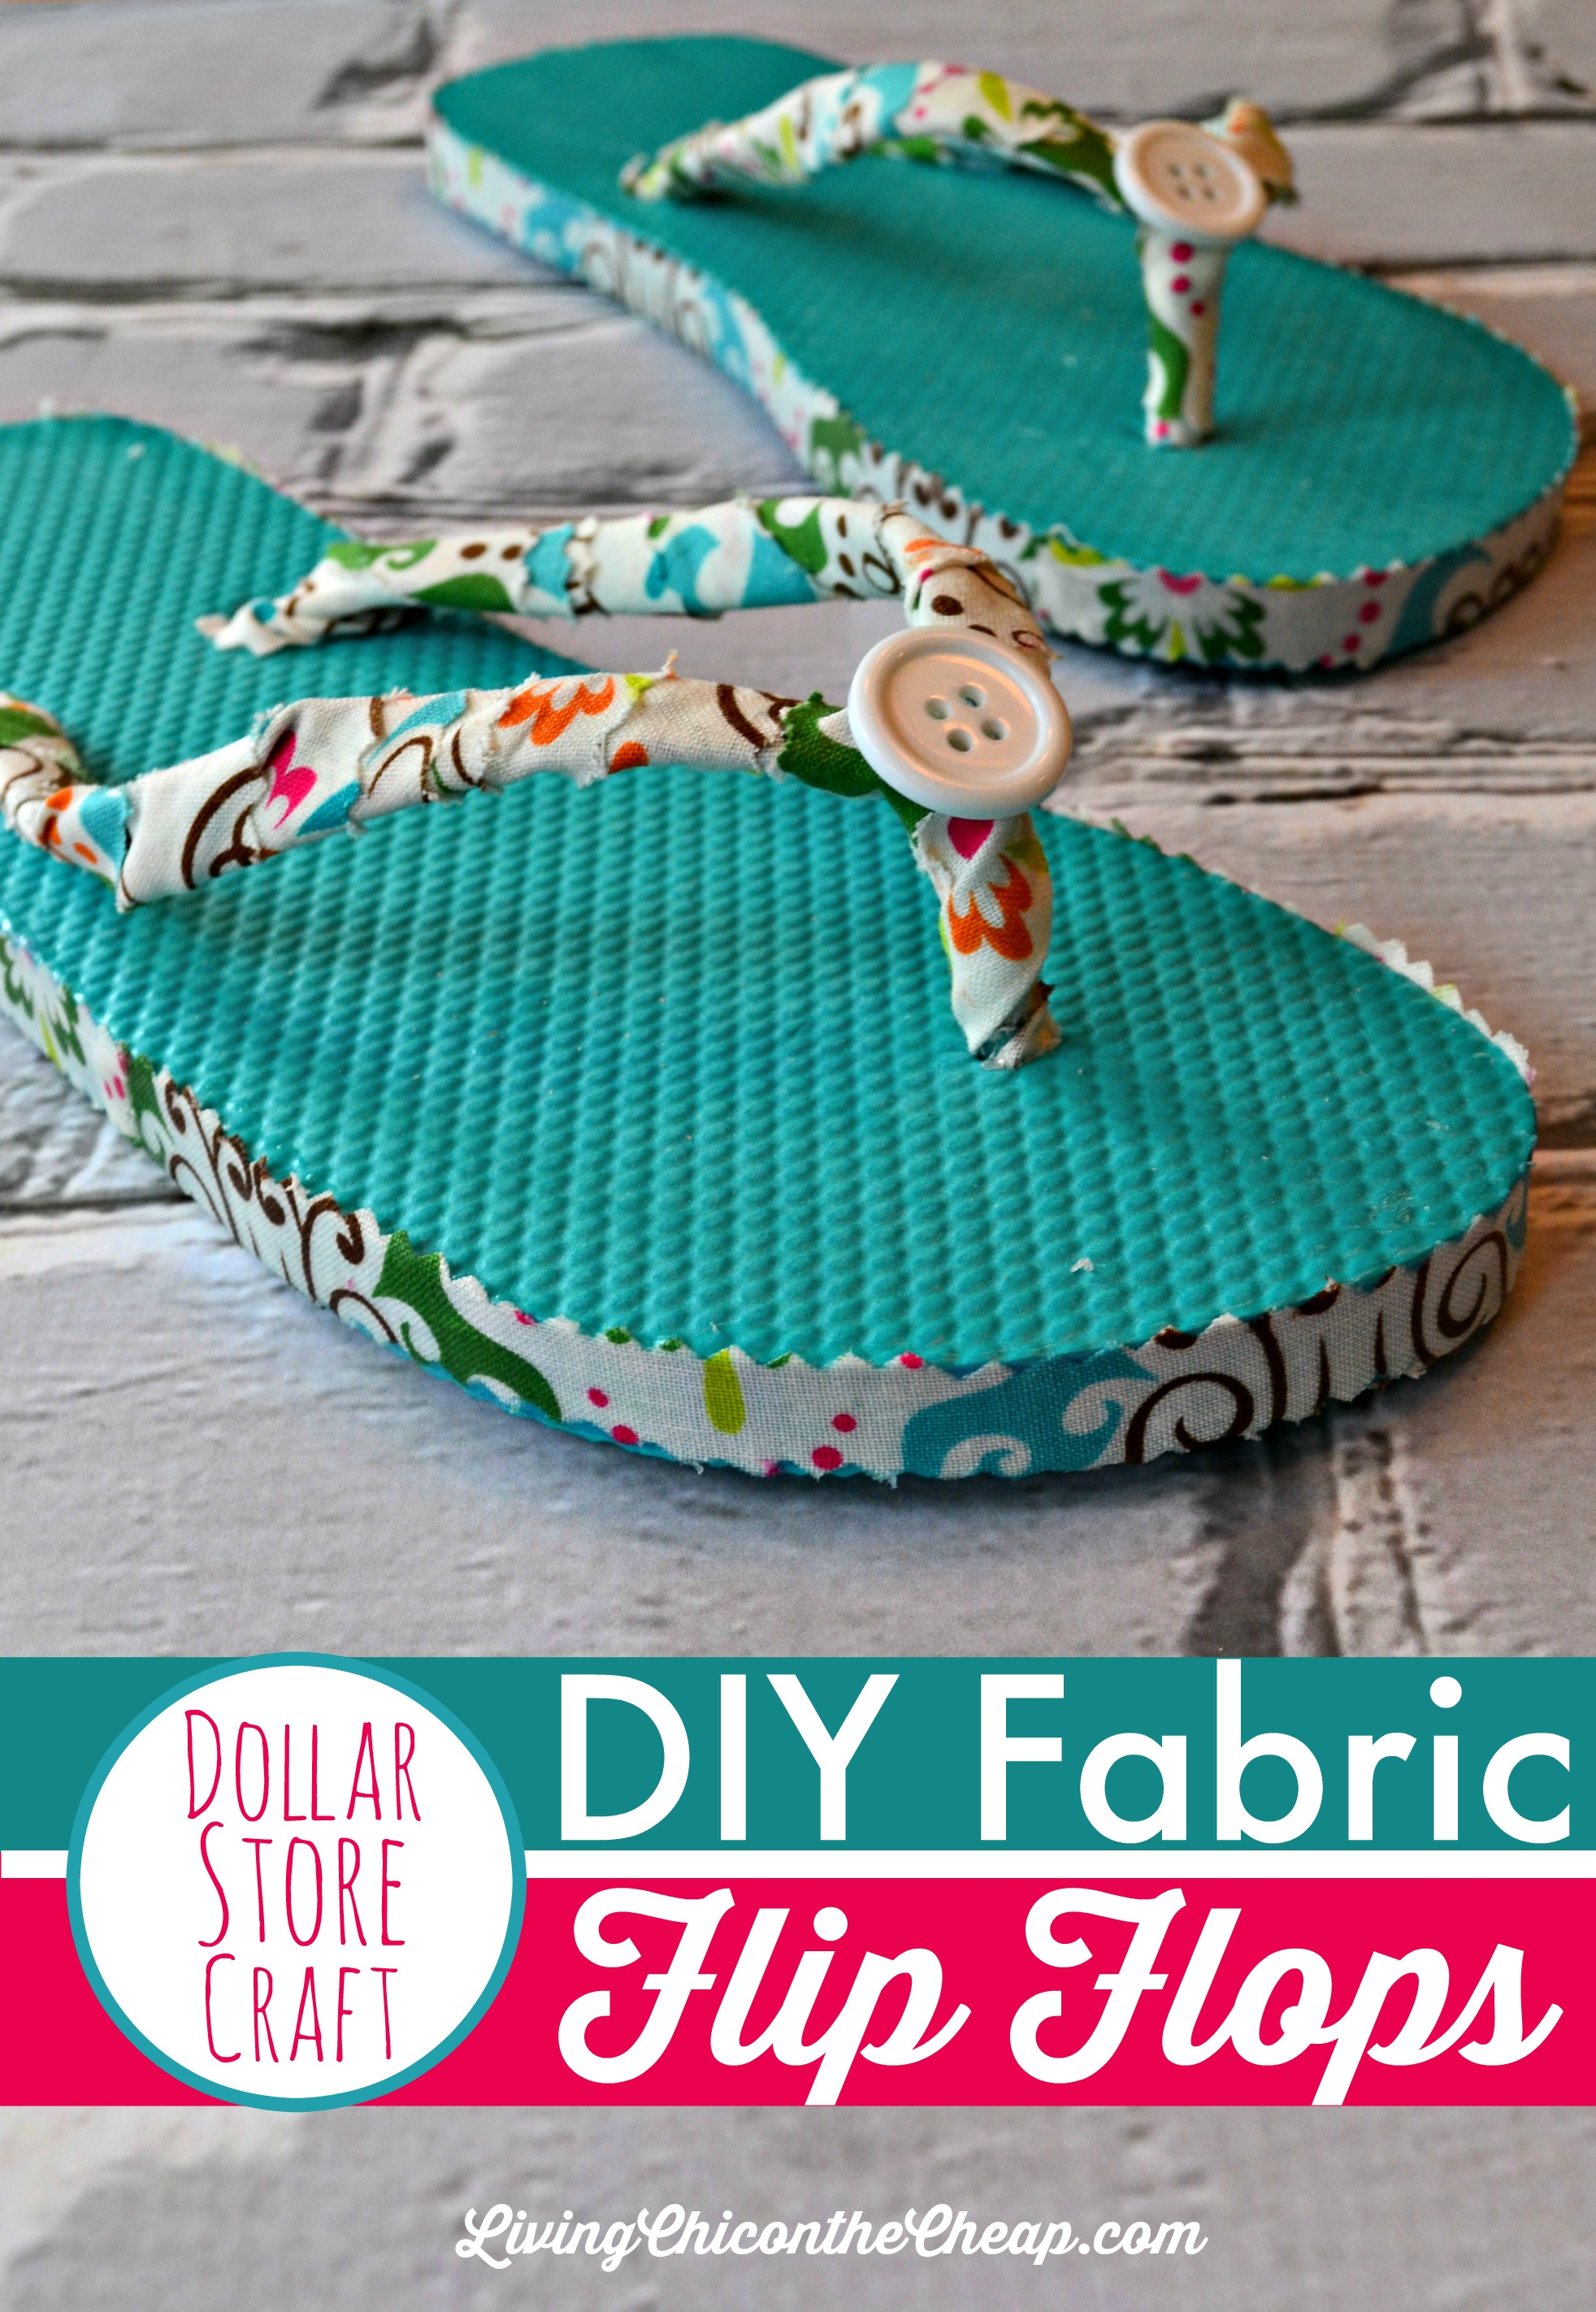 dcaf7832e DIY Fabric Flip Flops (No Sewing Required)